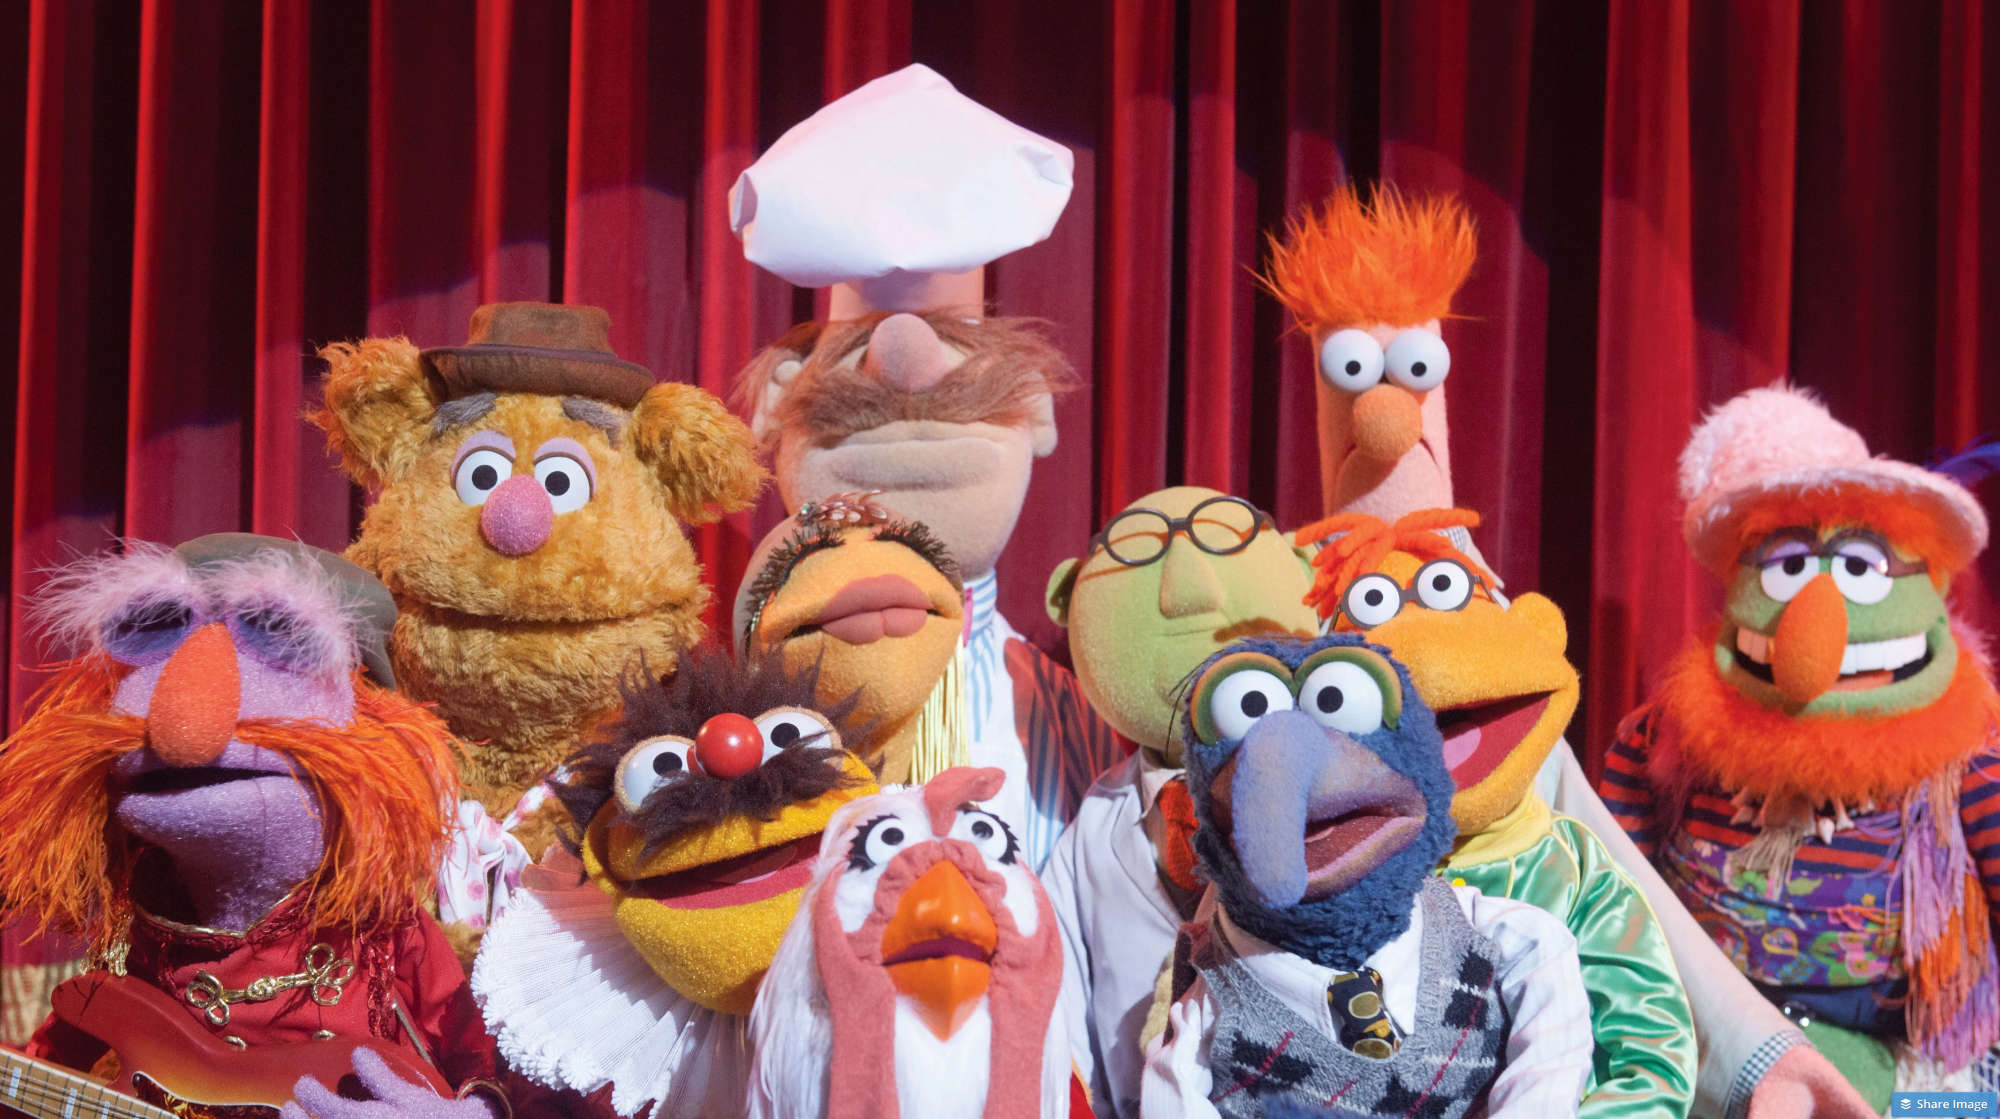 The Muppet Show Characters.